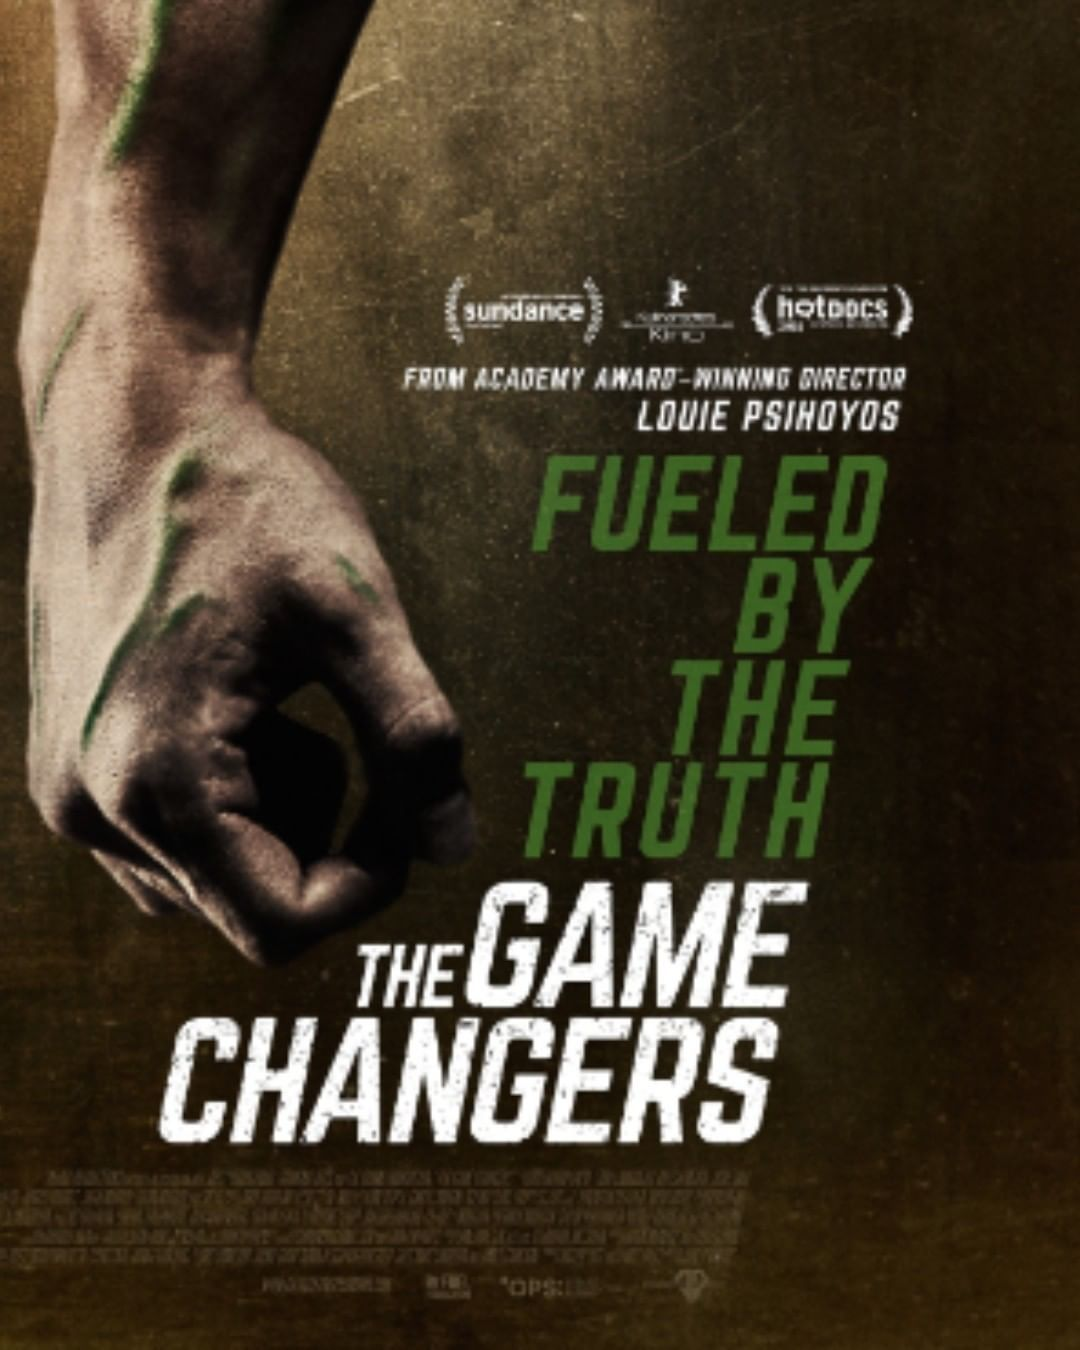 Invite a group of friends to go see this film and SPREAD the WORD! @gamechangersmovie will be in theaters on September 16th only. So inspiring to see a big-budget film spreading such a powerful message. Check out the trailer and get your tickets! Don't miss this film. • • • • •  #plantbased #vegan #poweredbyplants #plantstrong #protein #fueledbyplants #fueledbythetruth #plantpower #veganism #health #wellness #athlete #nutrition #gains #workout #weightlifting #instafit #athletenutrition #athletenutrition